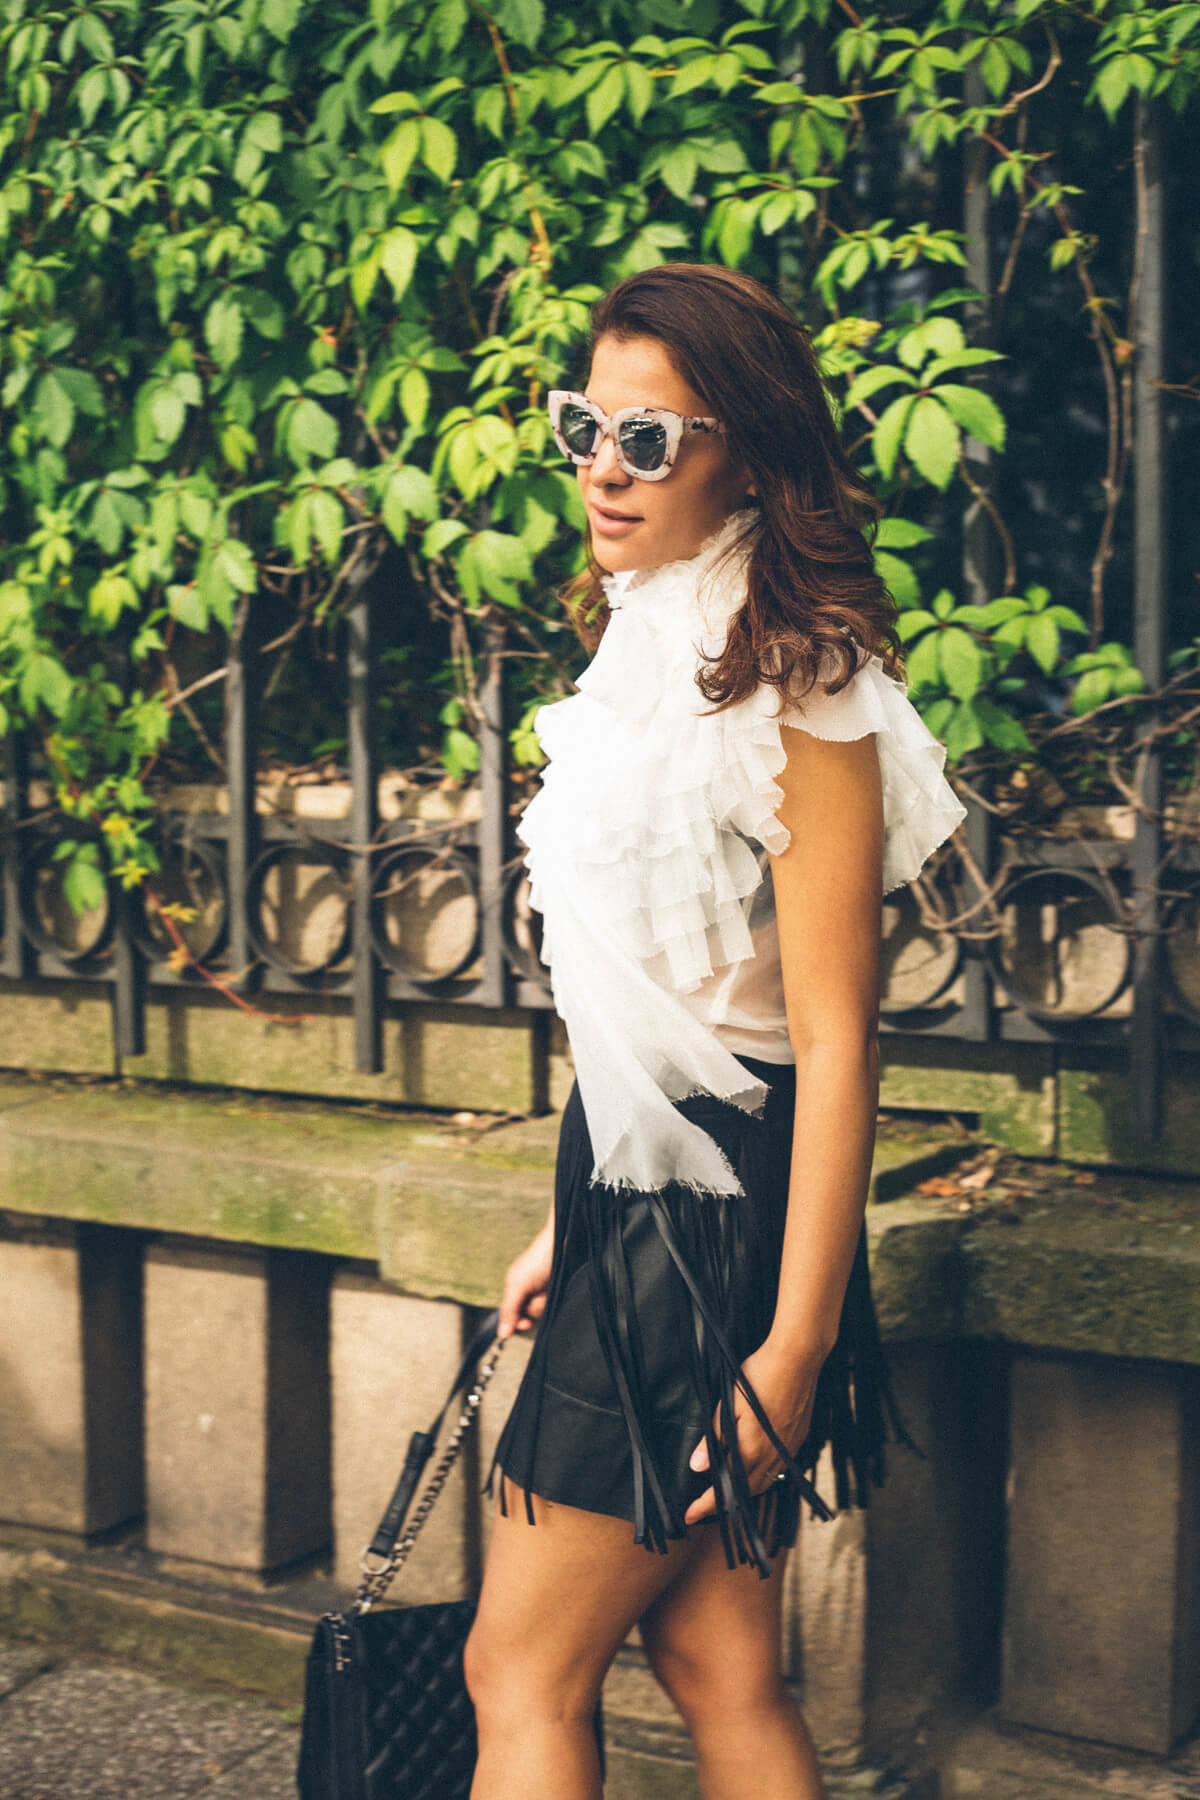 White shirt and black skirt outfit and sunglasses